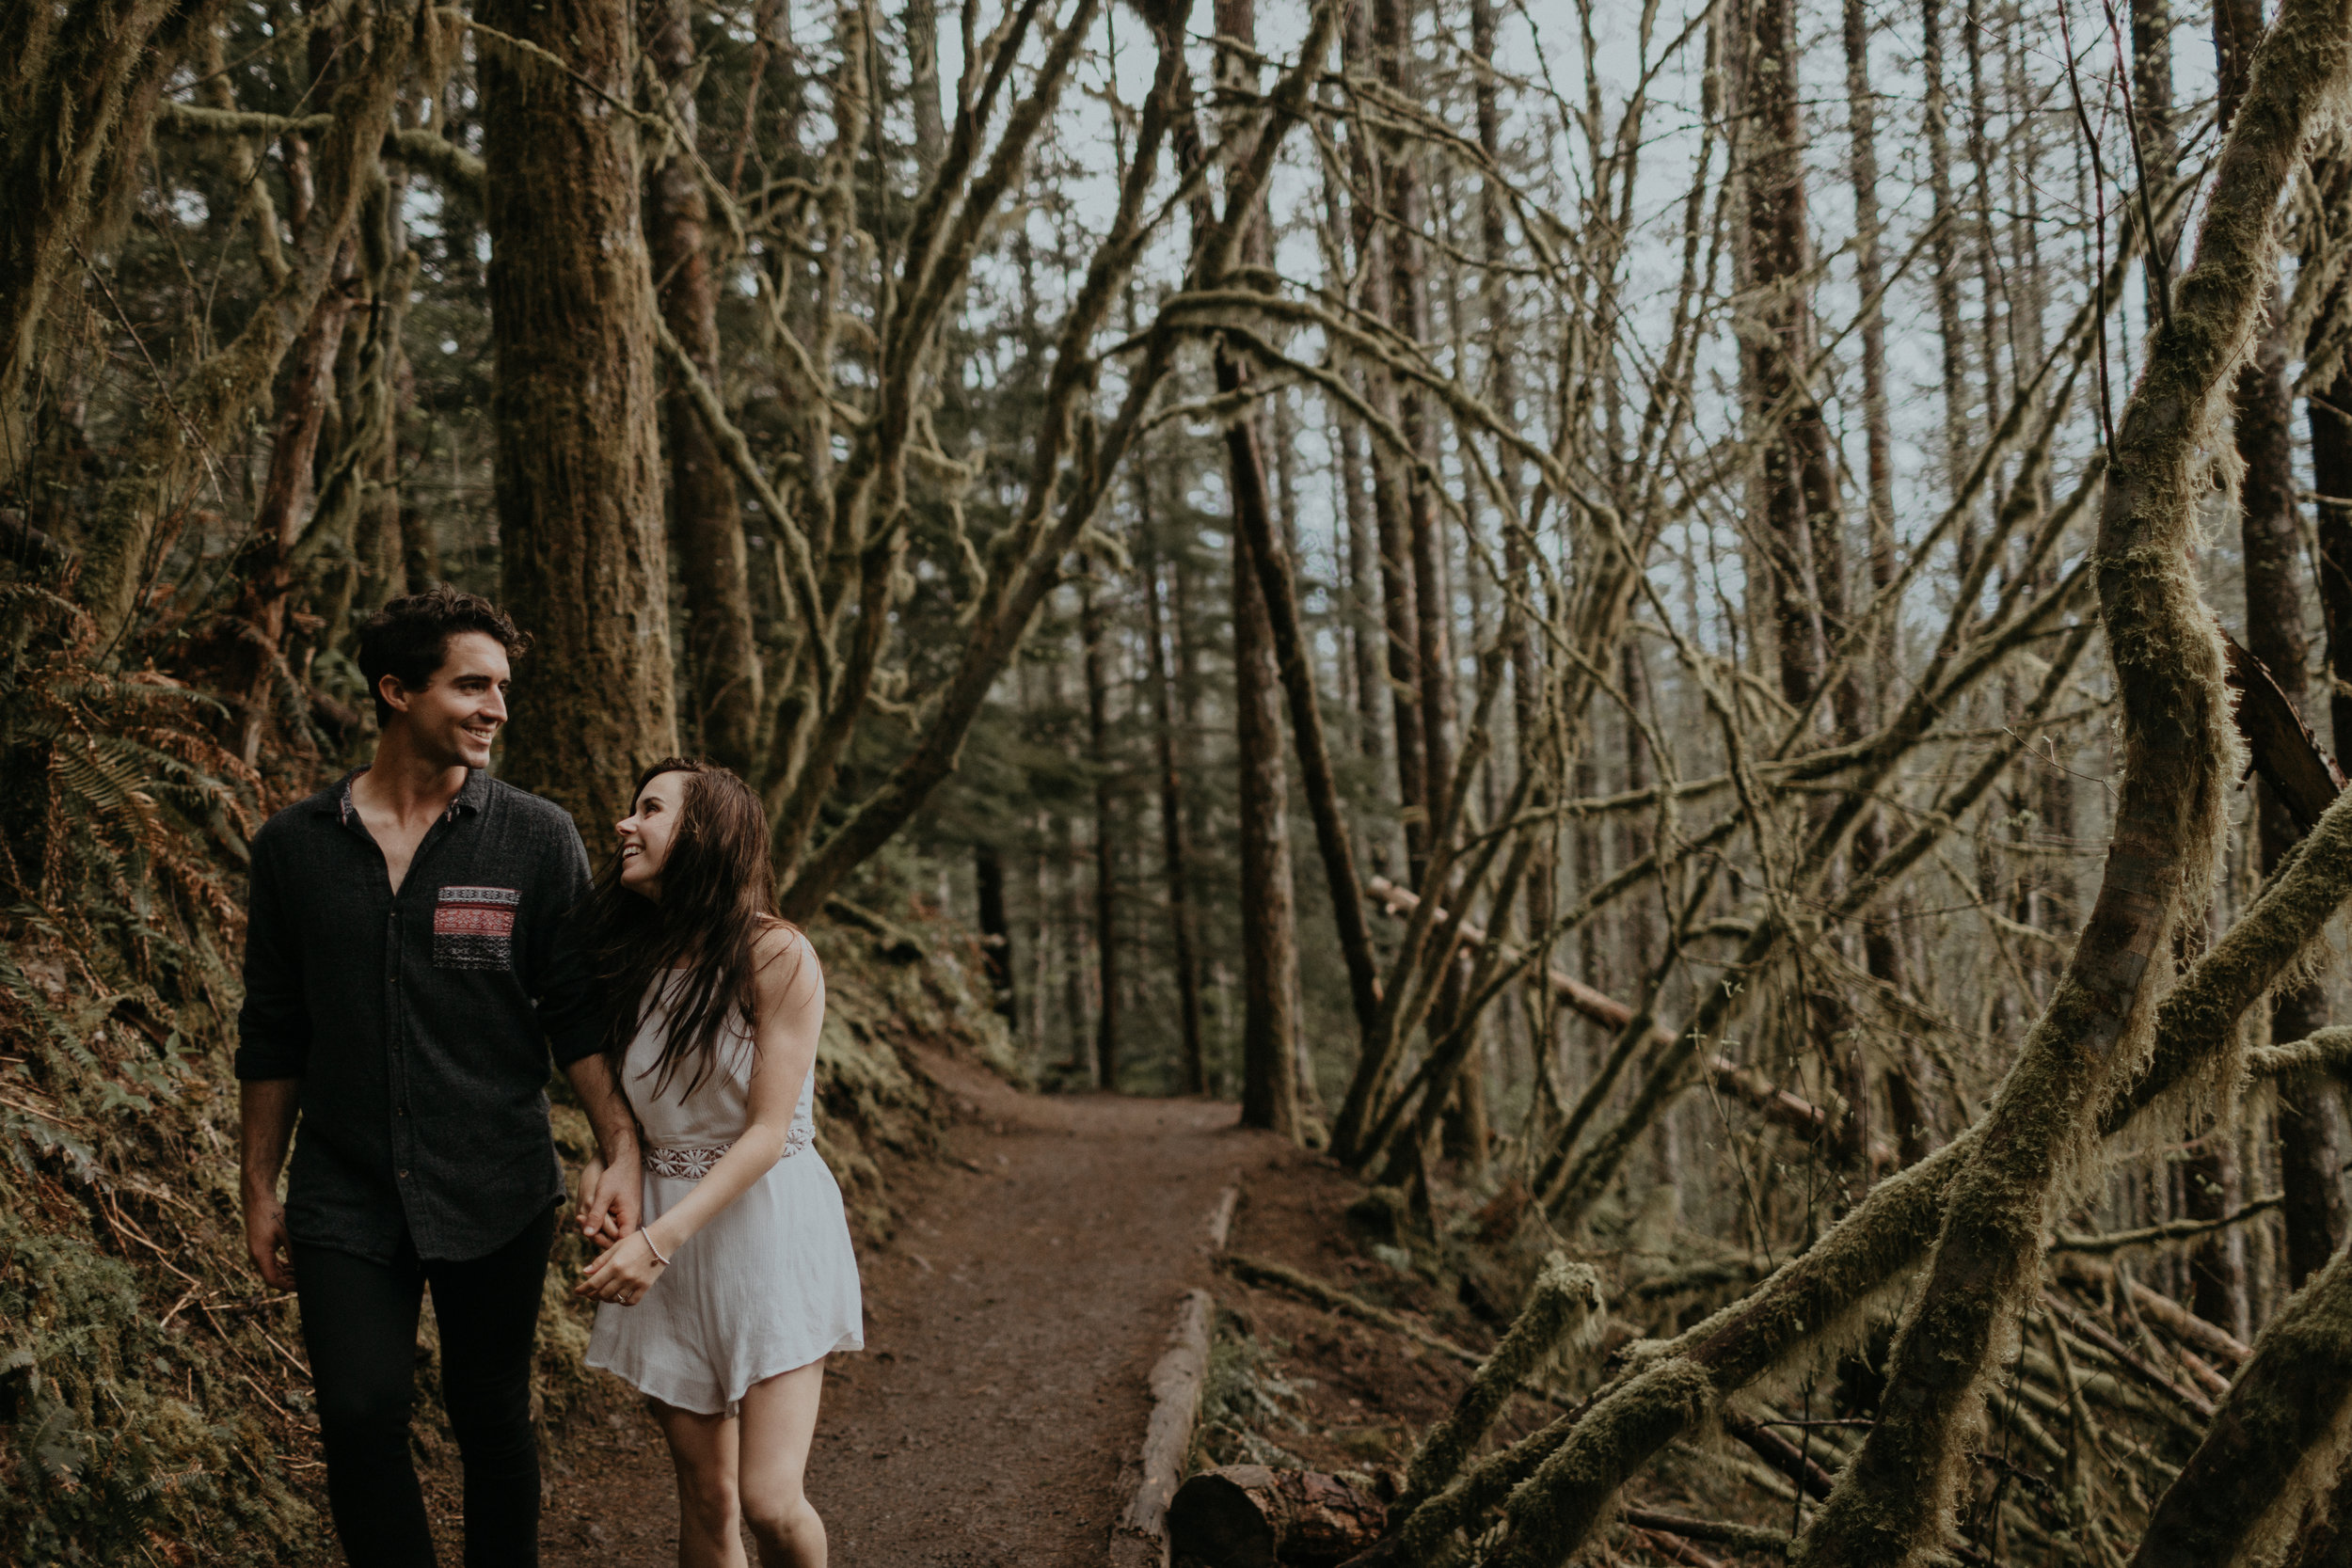 Heather_Justin_Rattlesnake_Ledge_Engagement-815-1326.jpg